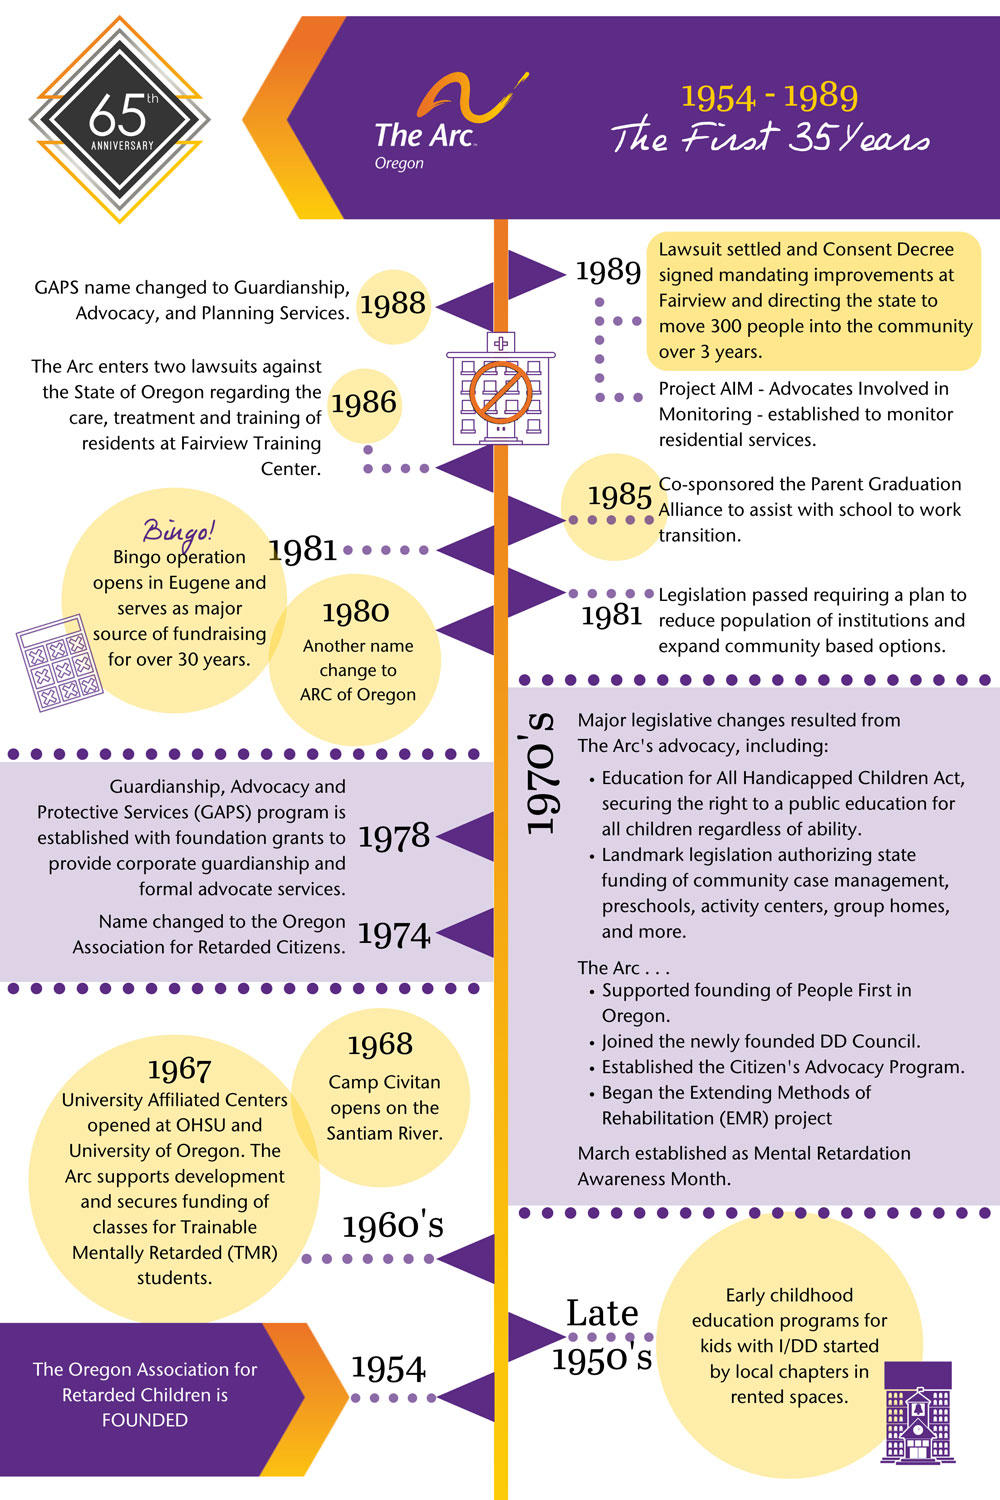 Infographic of the history of The Arc Oregon from 1954 to 1989